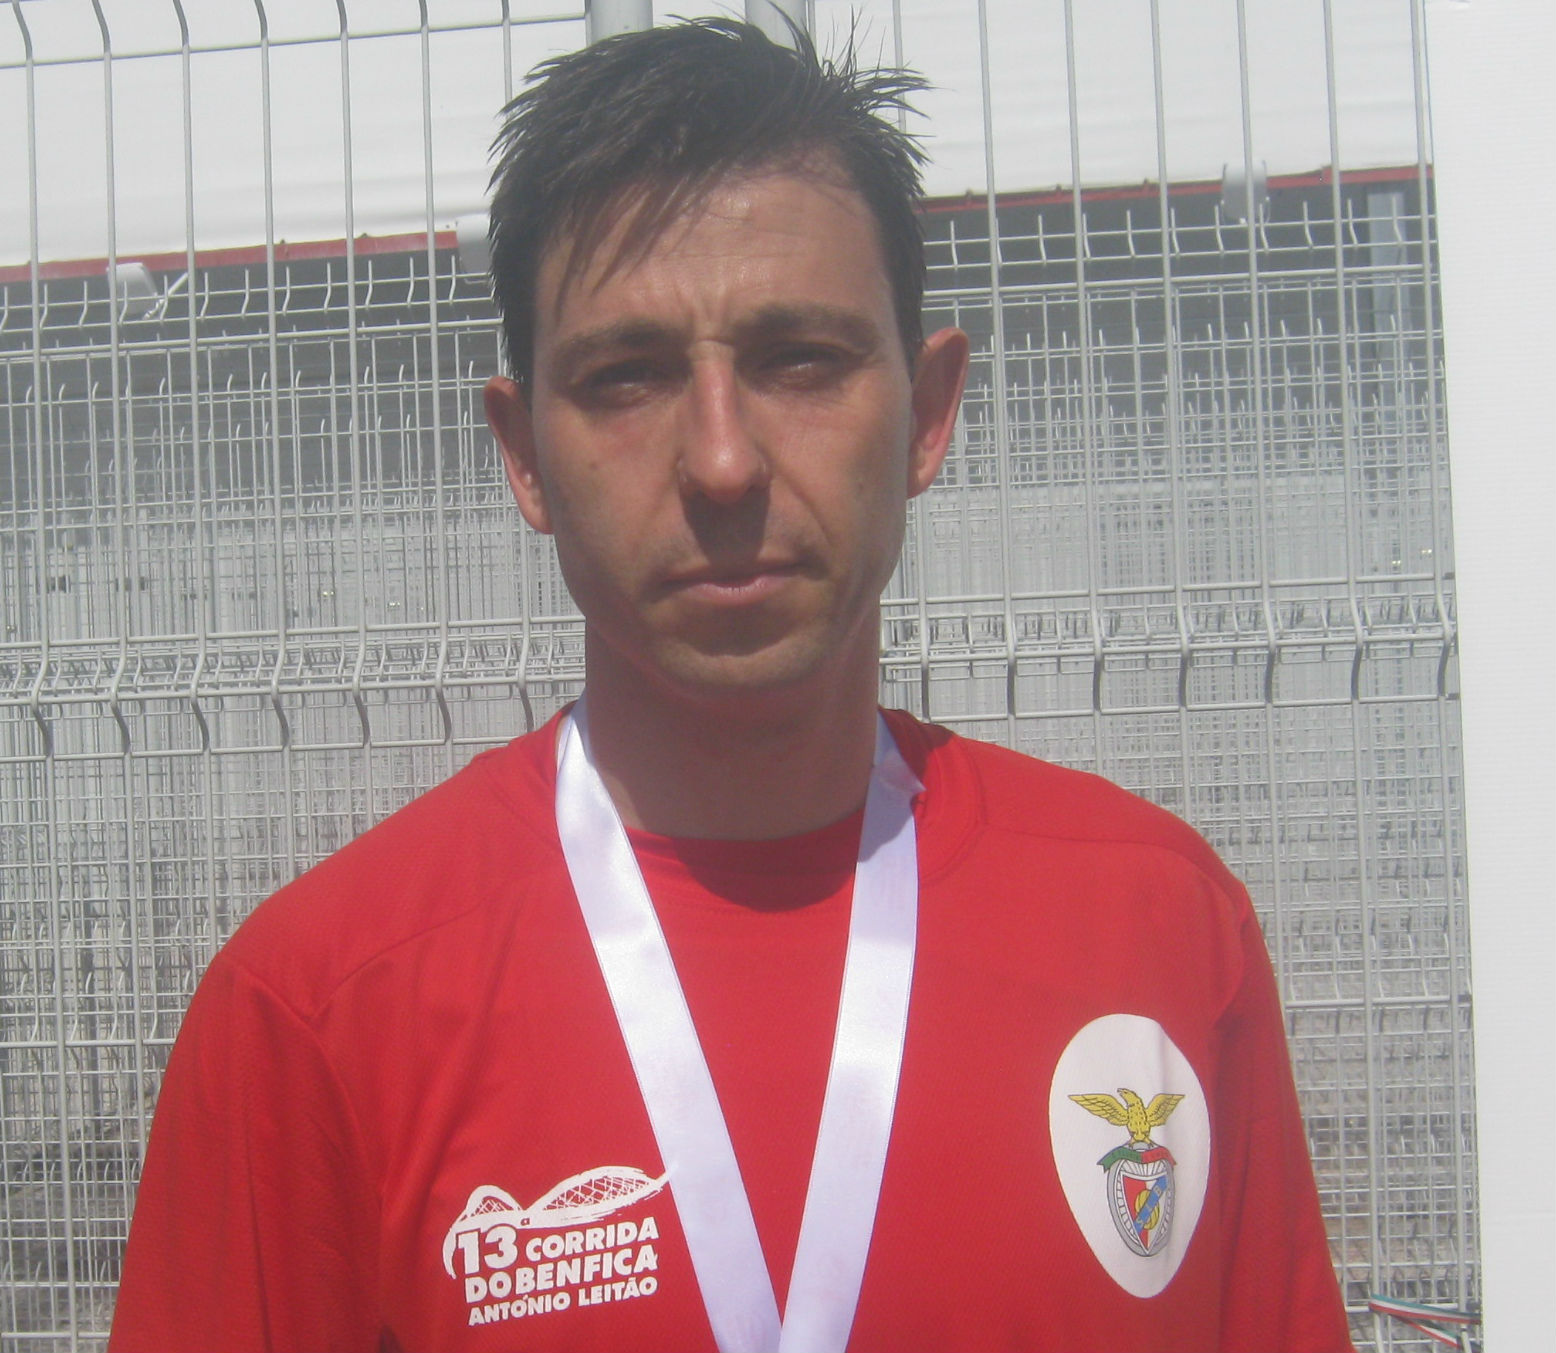 Corrida do Benfica2018-David Tadeu